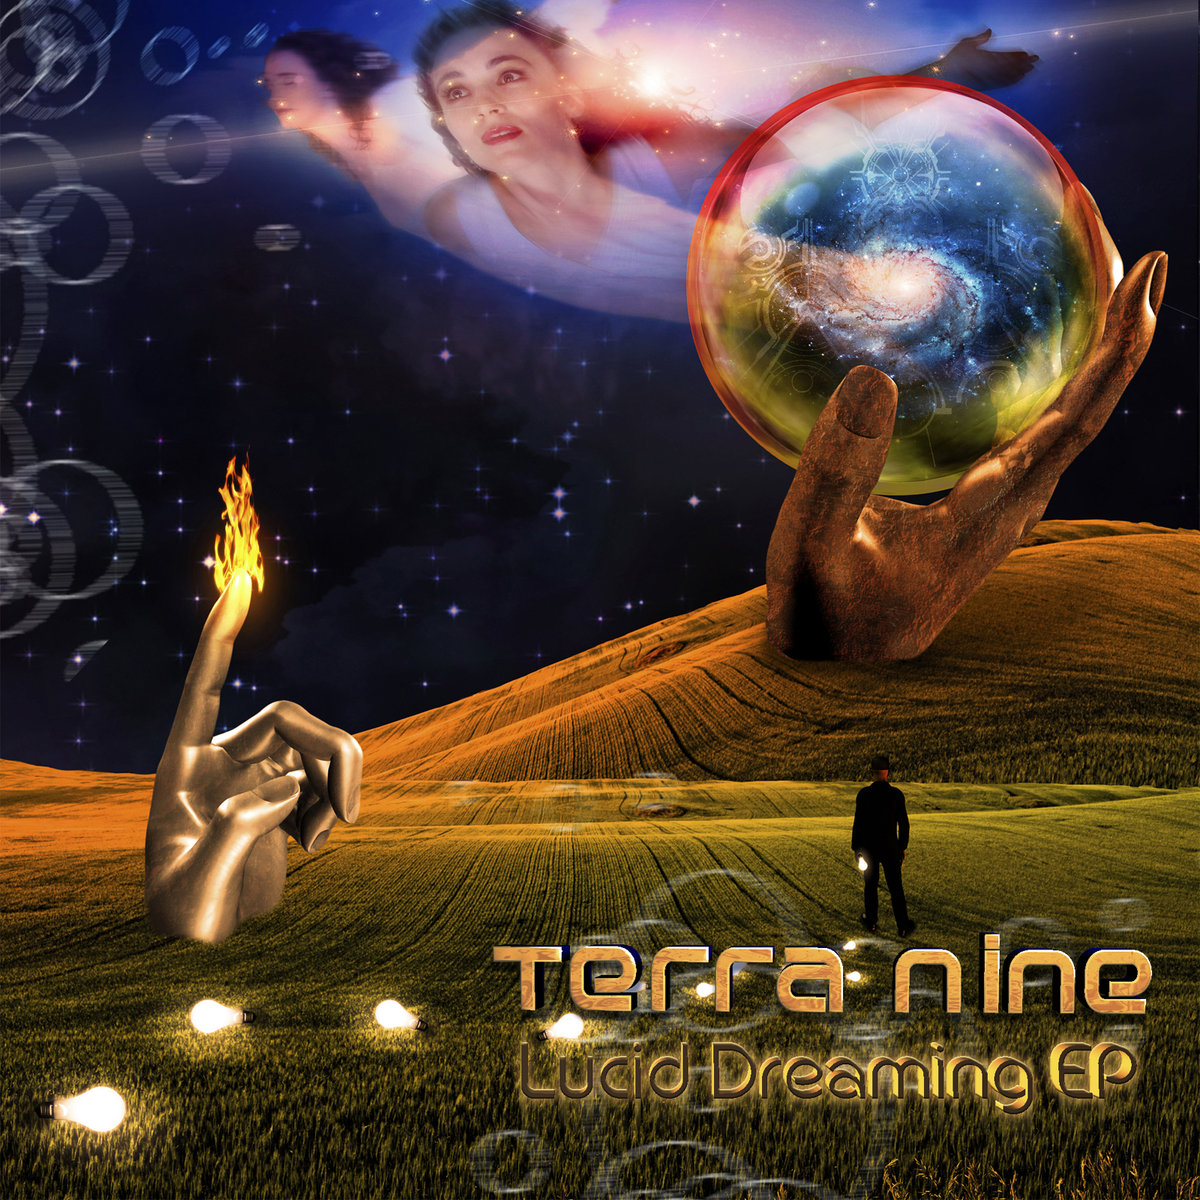 Terra Nine - Lucid Dreaming @ 'Lucid Dreaming EP' album (electronic, lucid dreaming download)